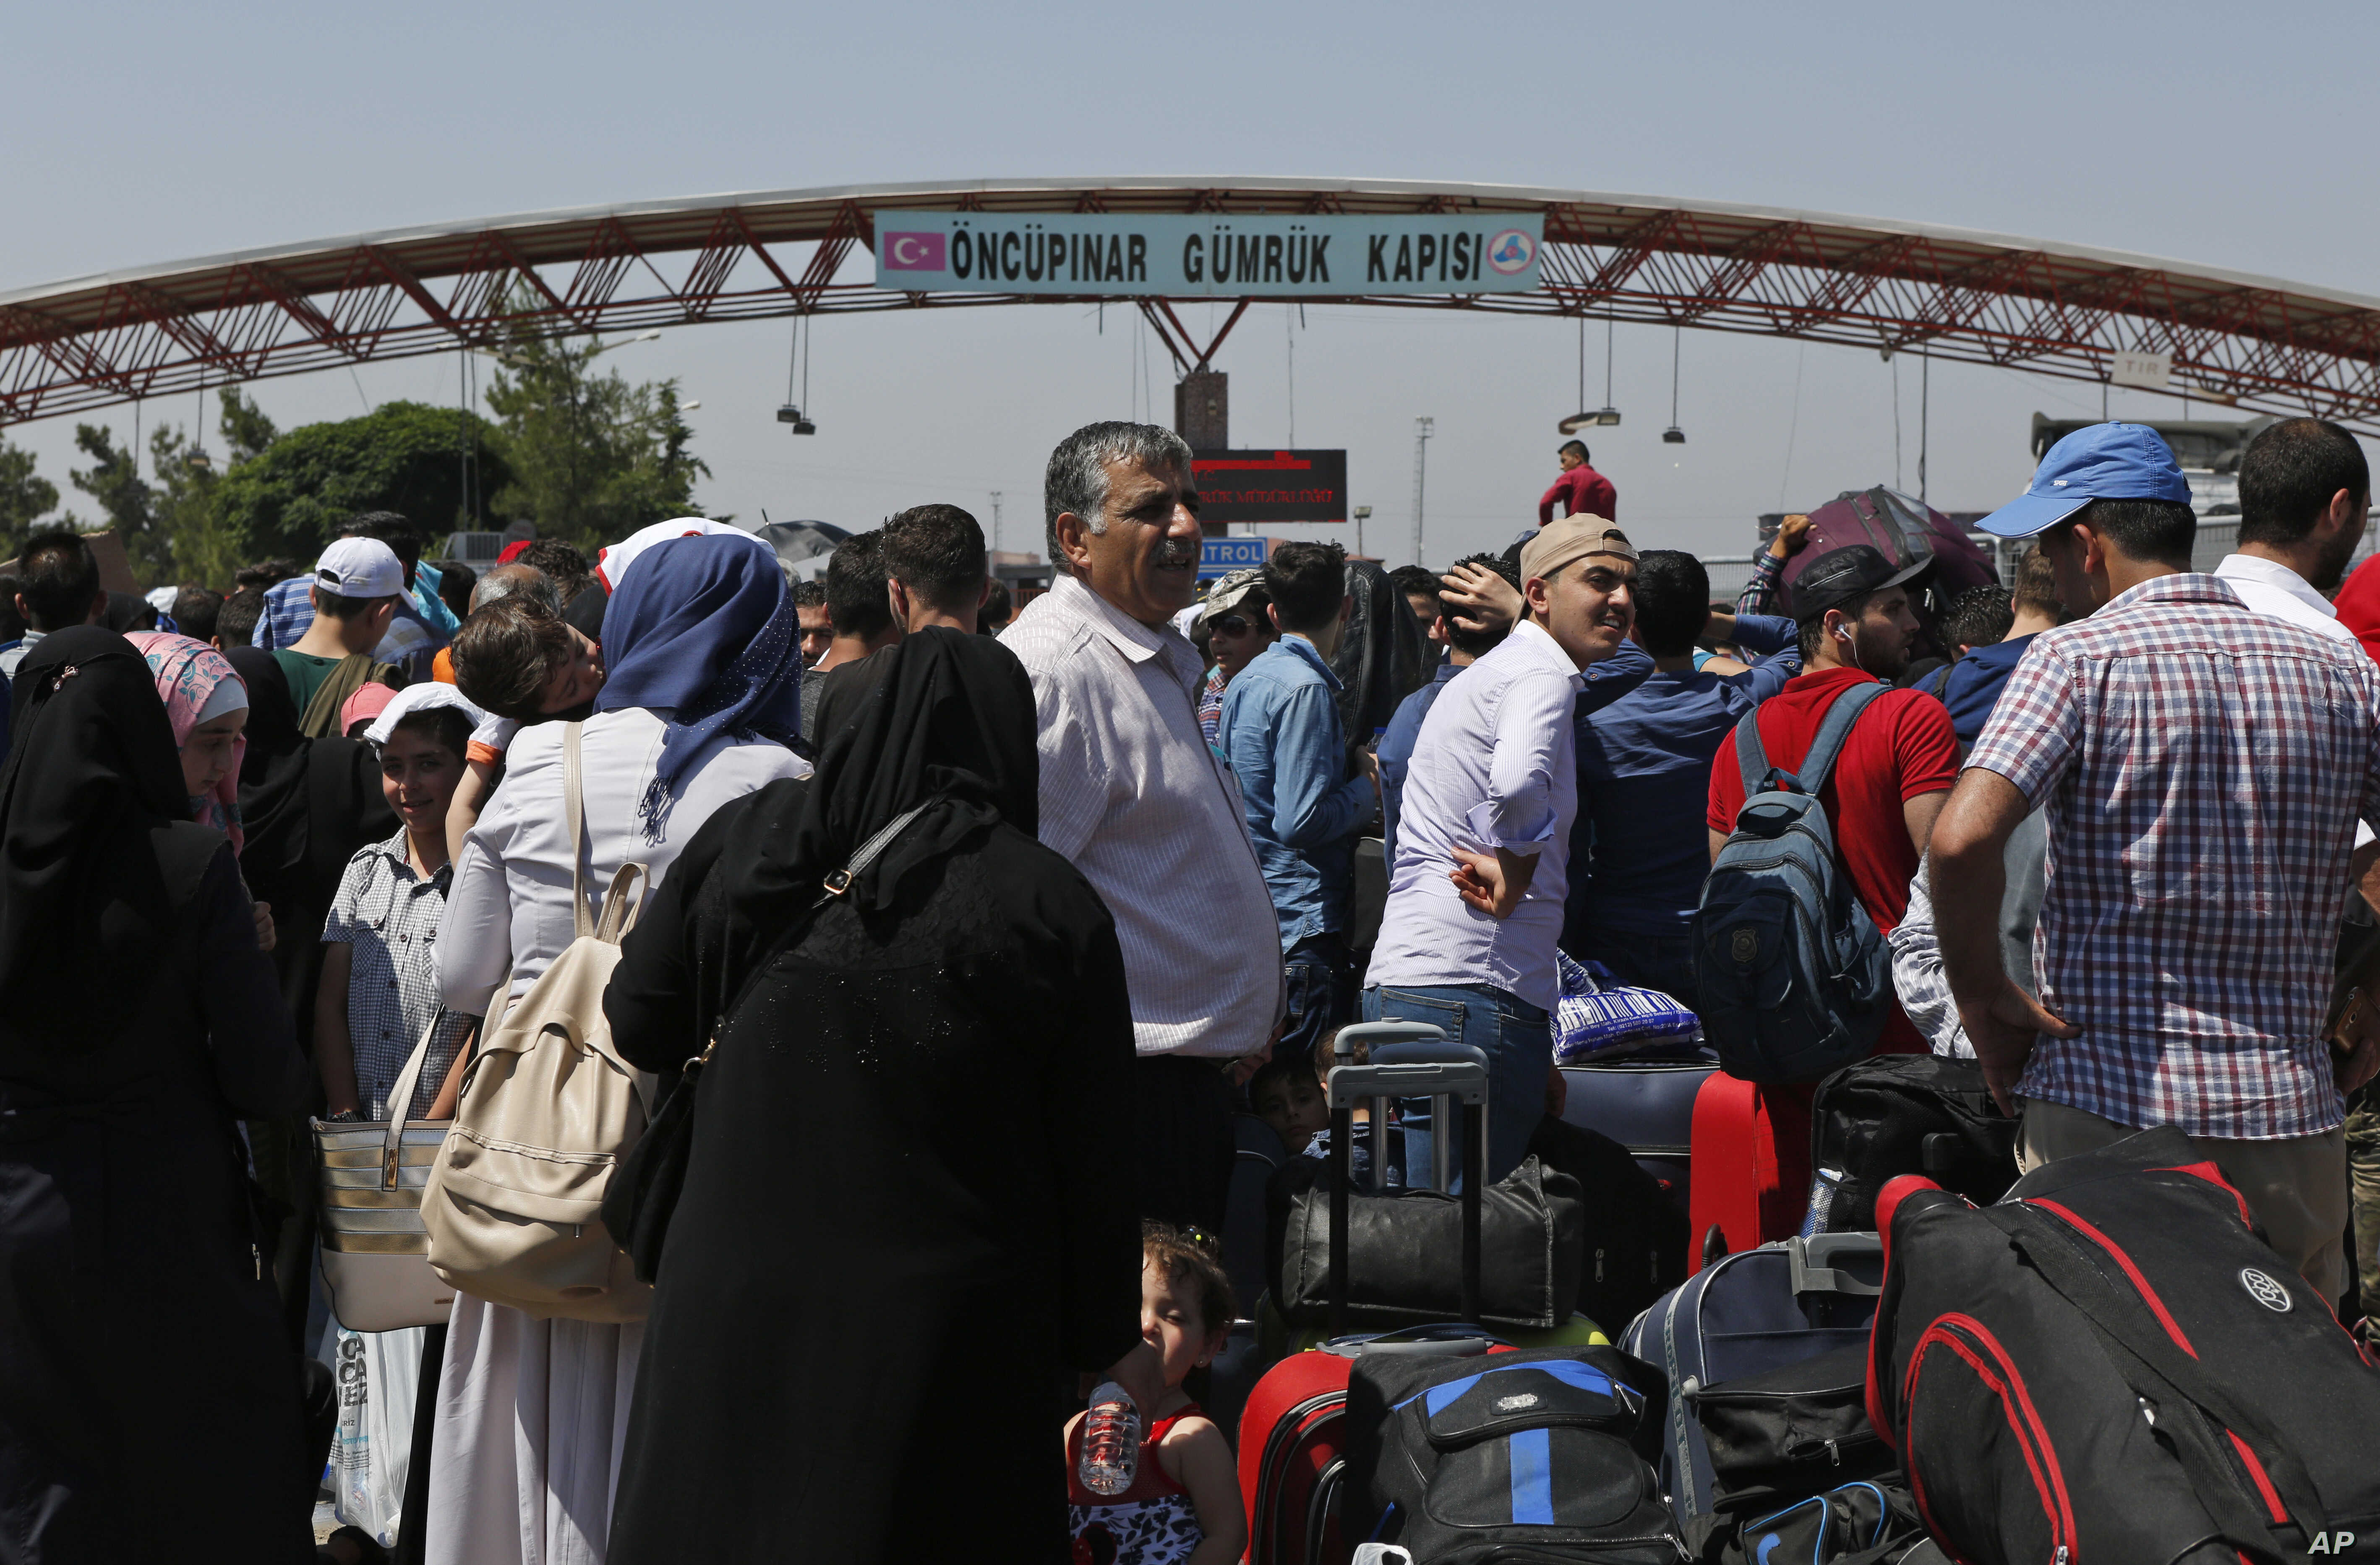 In this June 13, 2017 photo, Syrians living in Turkey wait to cross into Syria at the Oncupinar border crossing, near the town of Kilis, Turkey.